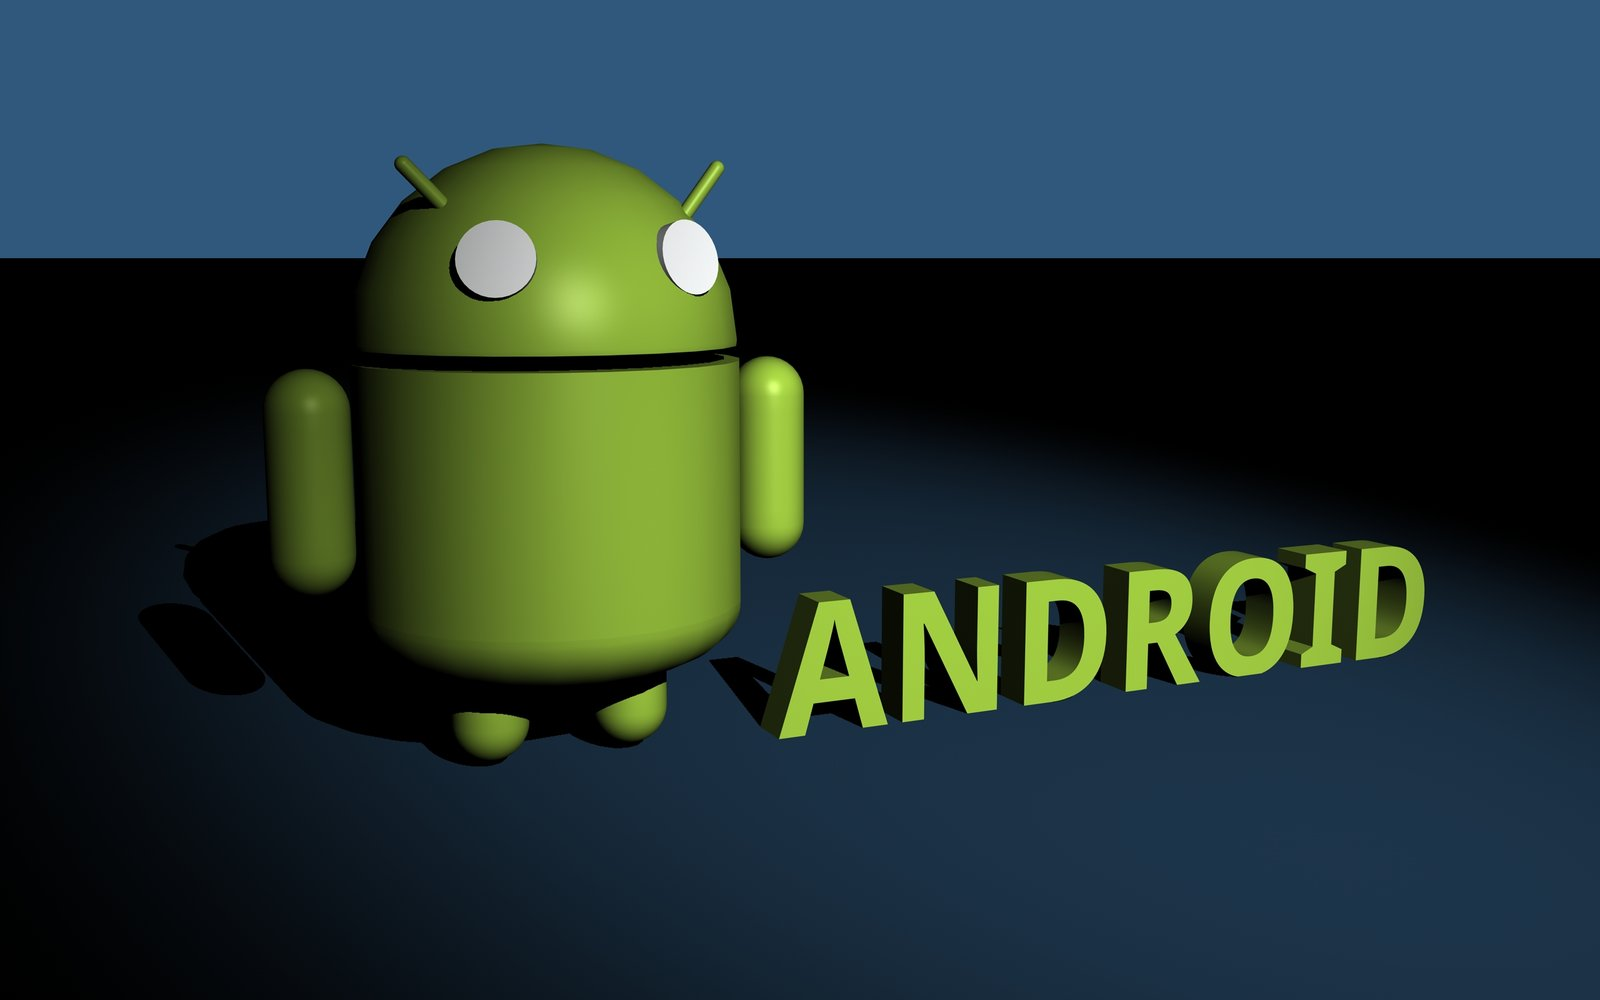 3D HD Wallpaper for Android Widescreen